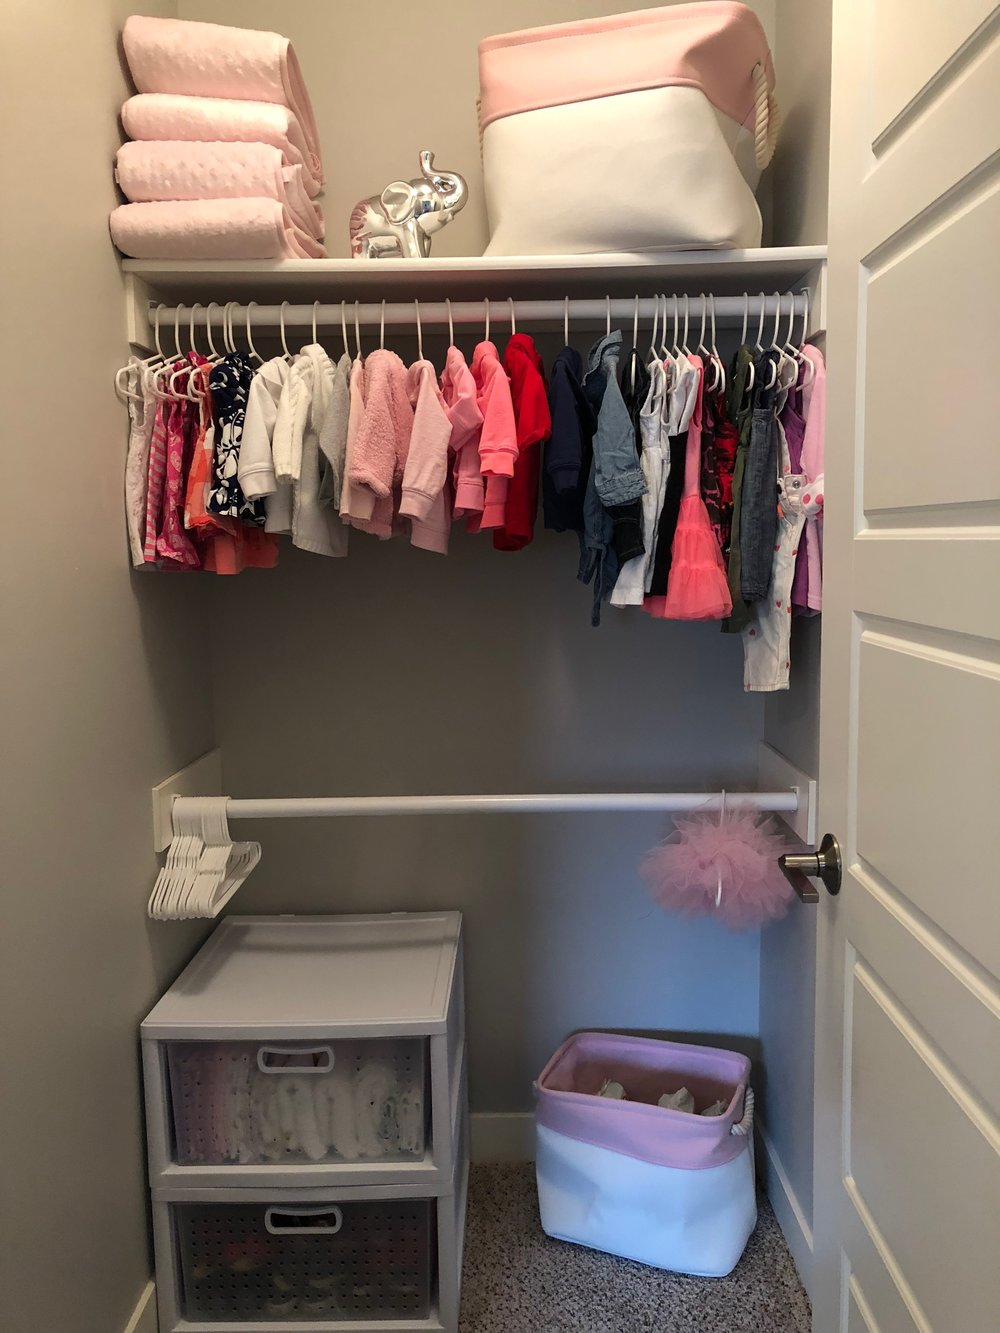 AFTER - Everything in this closet is now visible and easily accessible!